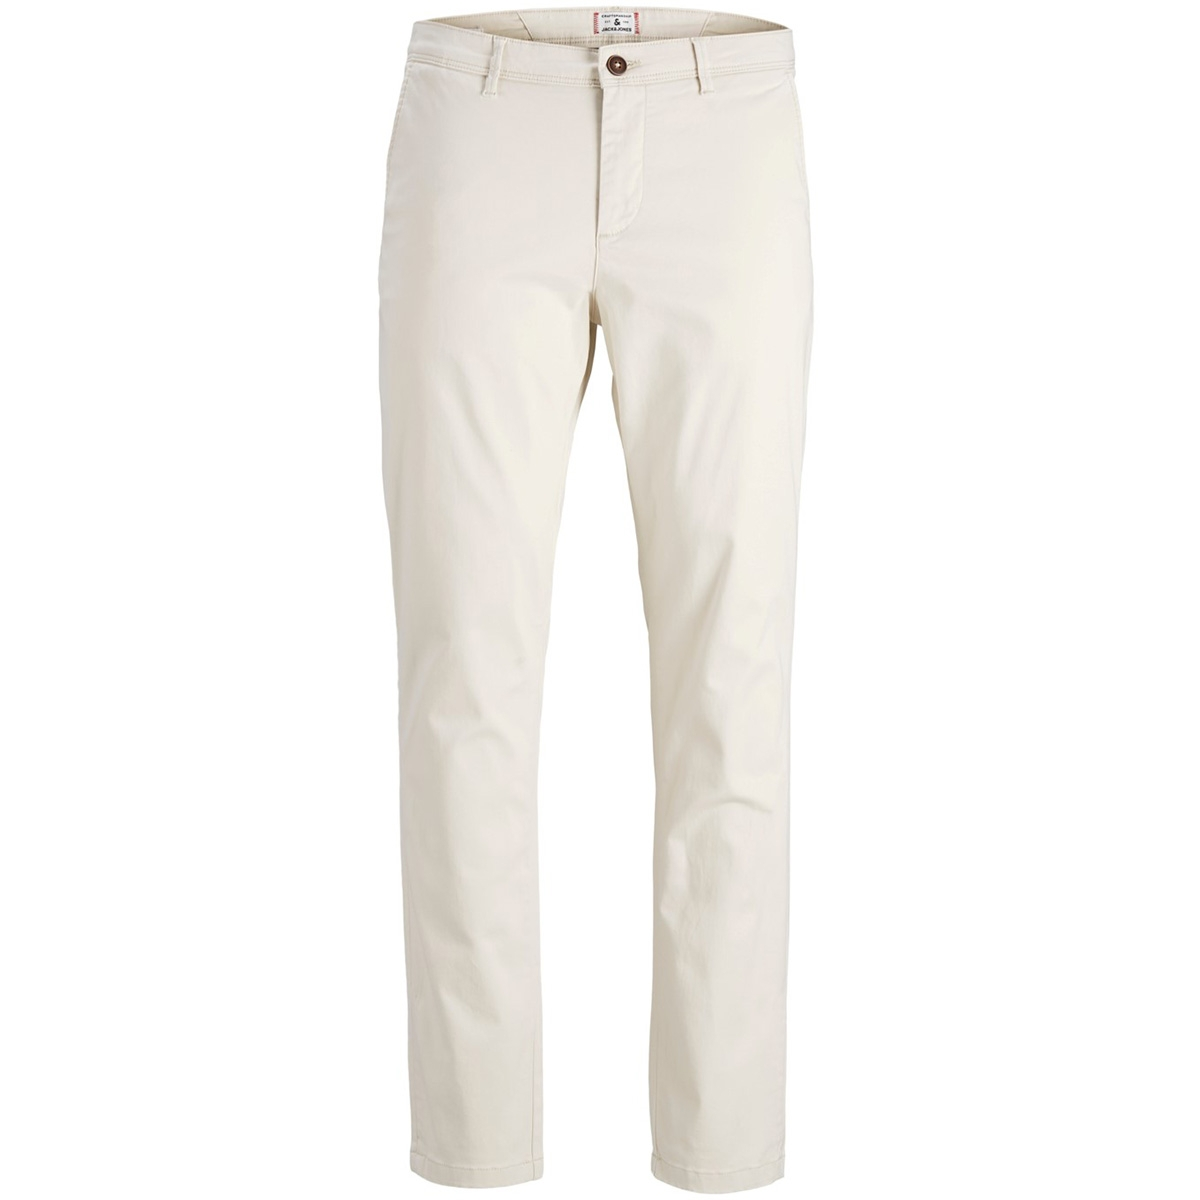 jjimarco jjbowie sa silver birch st 12165610 jack & jones broek silver birch